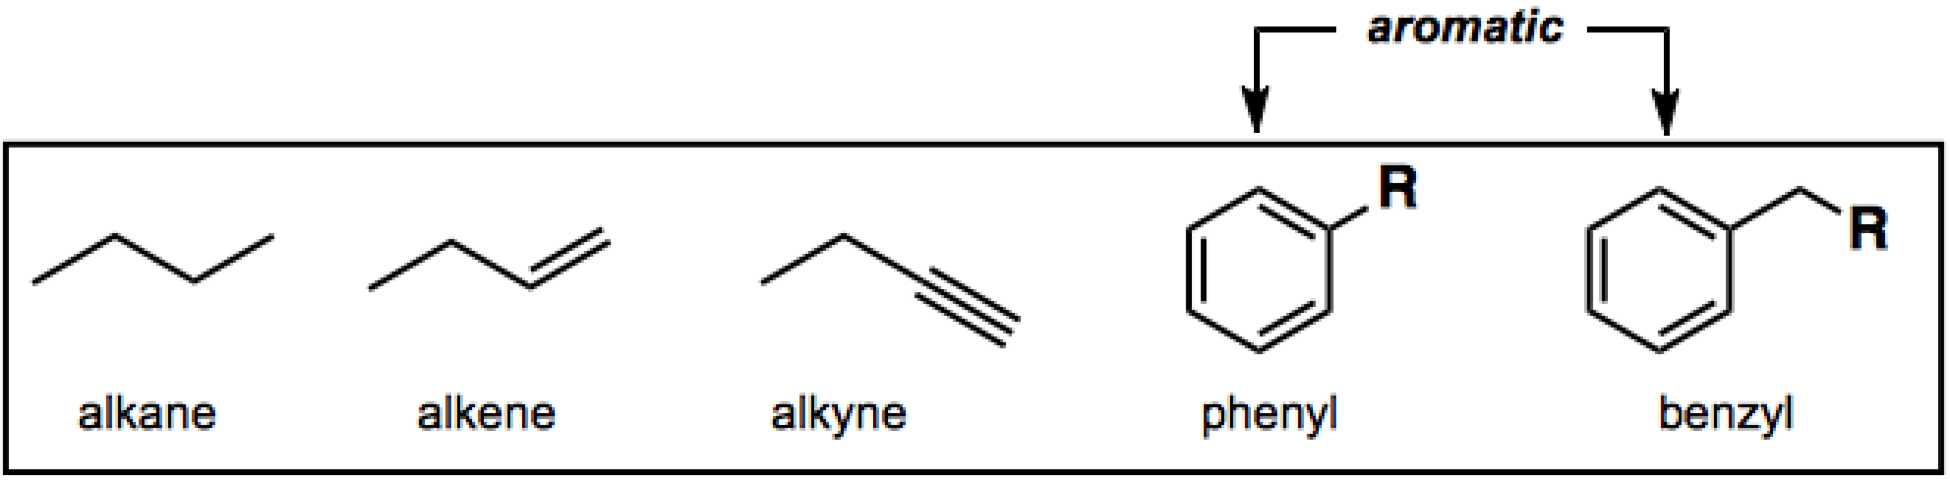 hydrocarbon-functional-groups